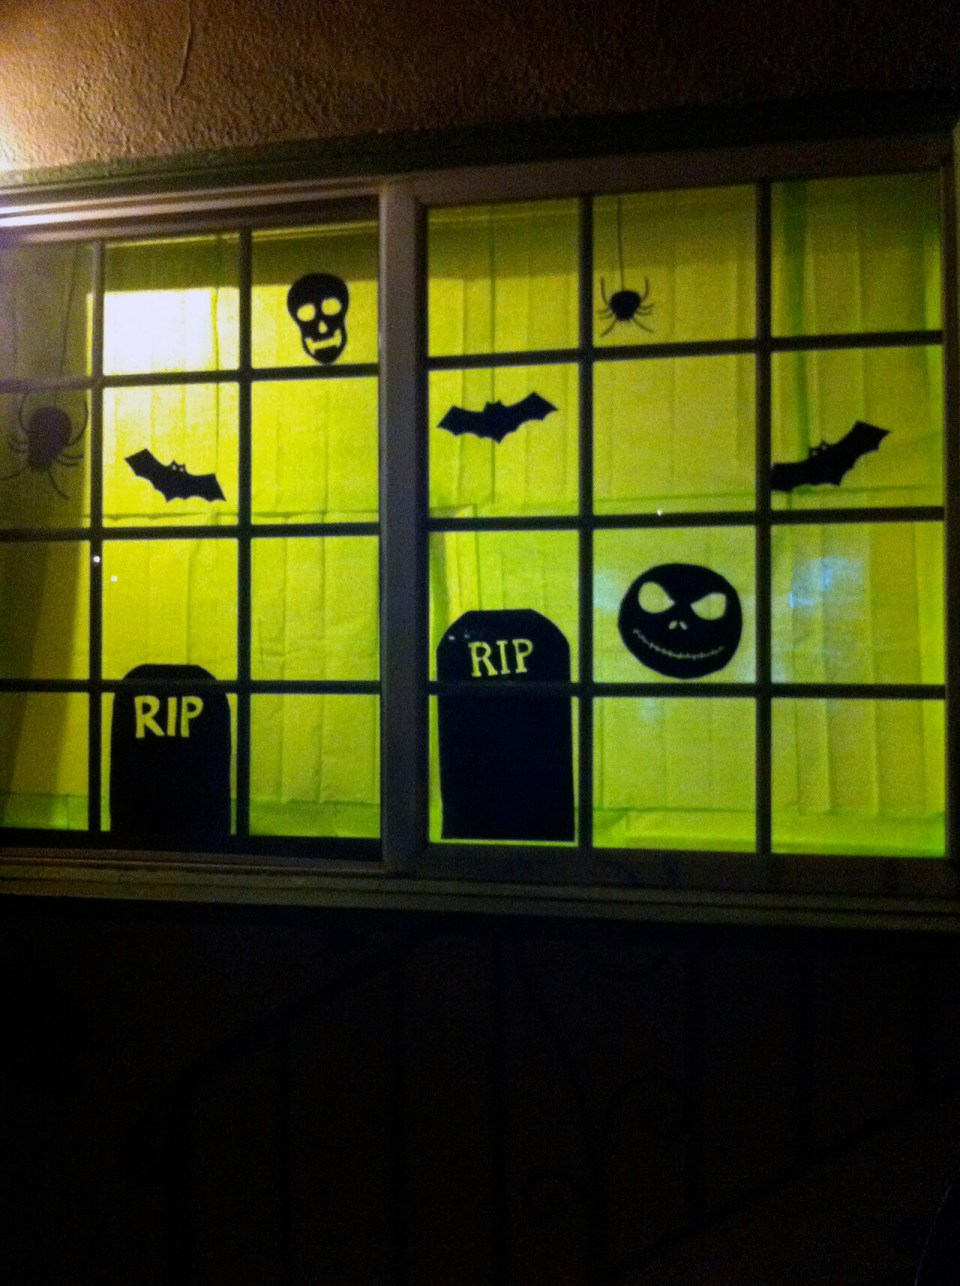 Creepy Cemetery at Night | DIY Halloween Window Decoration Ideas